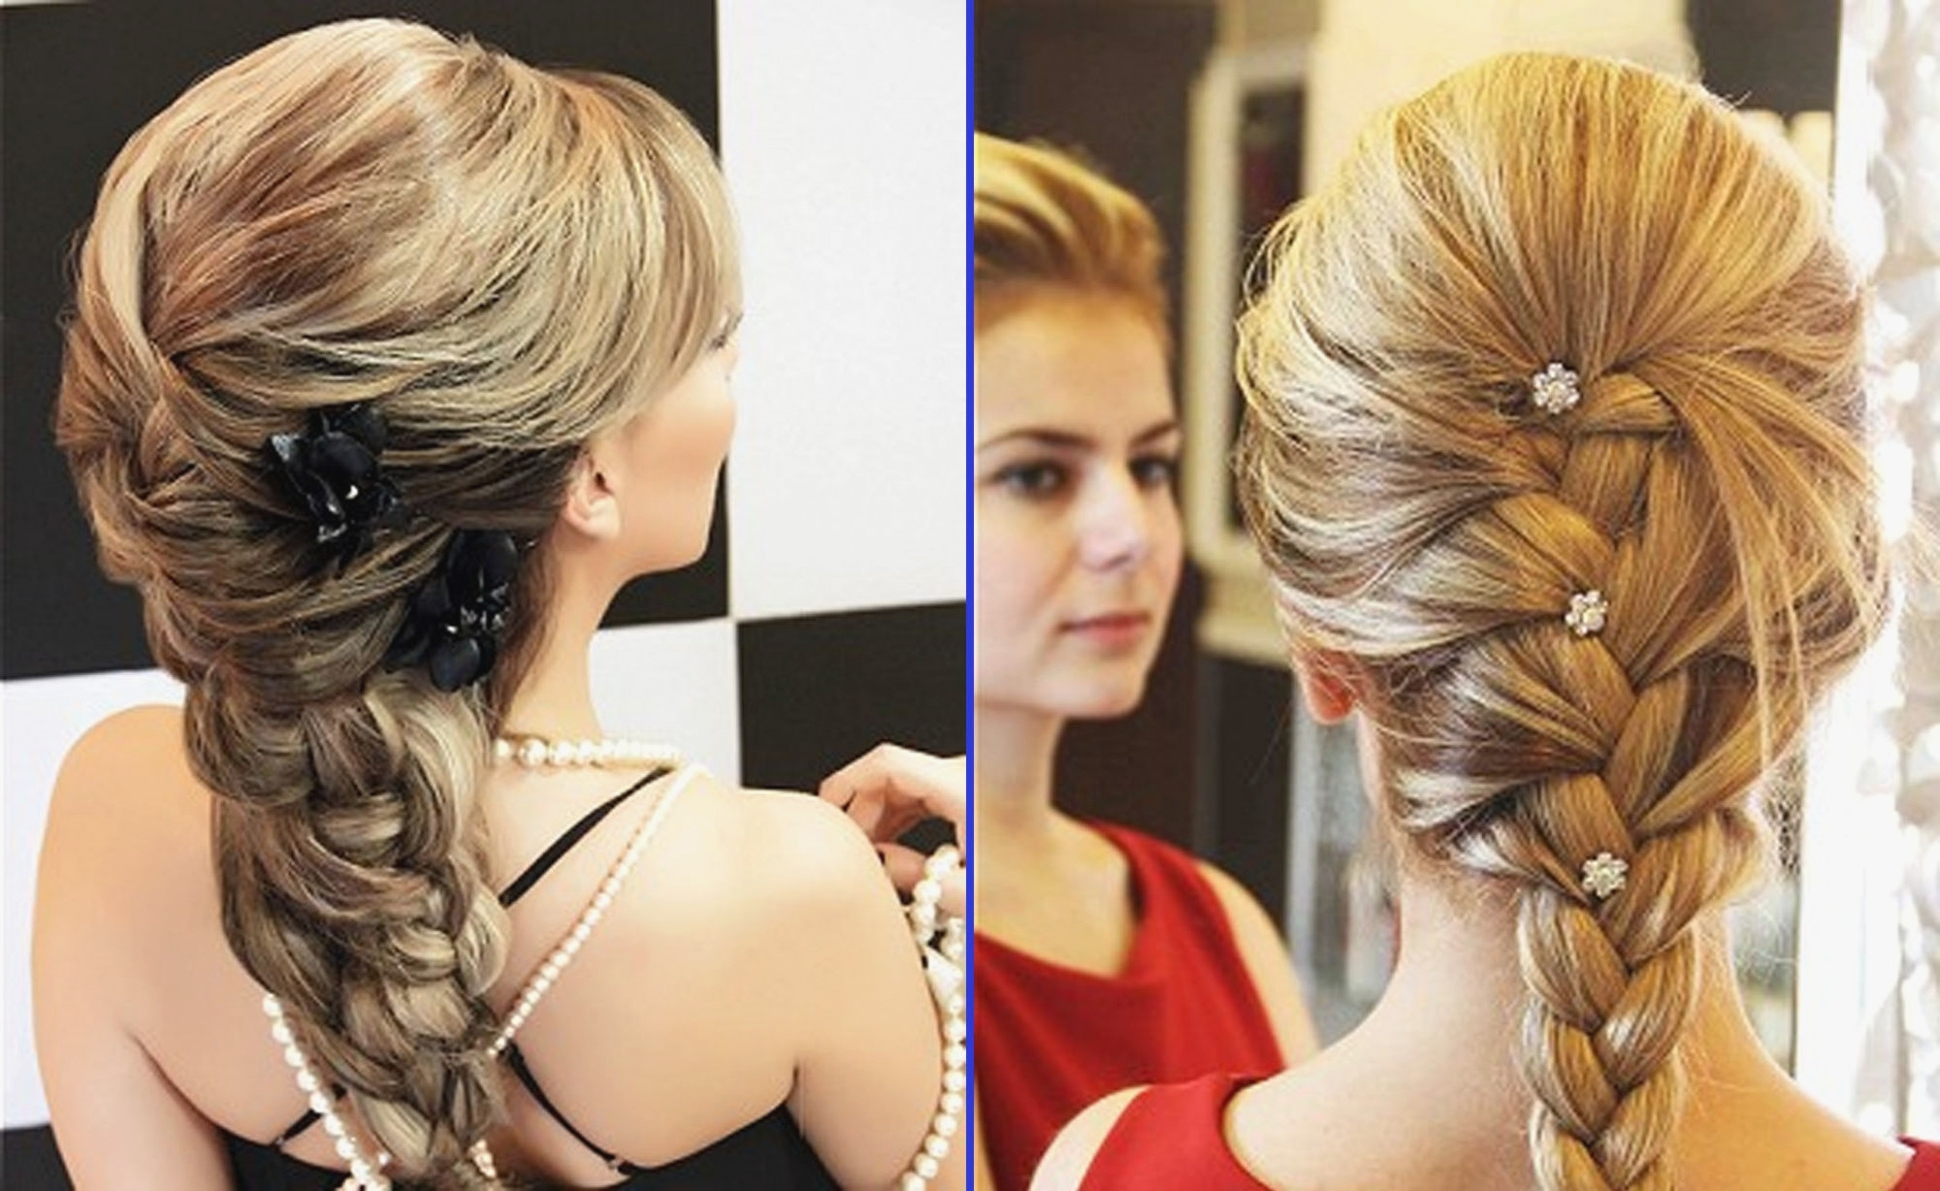 How To Have A Fantastic Wedding Hairstyles For Long Hair In Well Liked Wedding Braided Hairstyles For Long Hair (View 12 of 15)